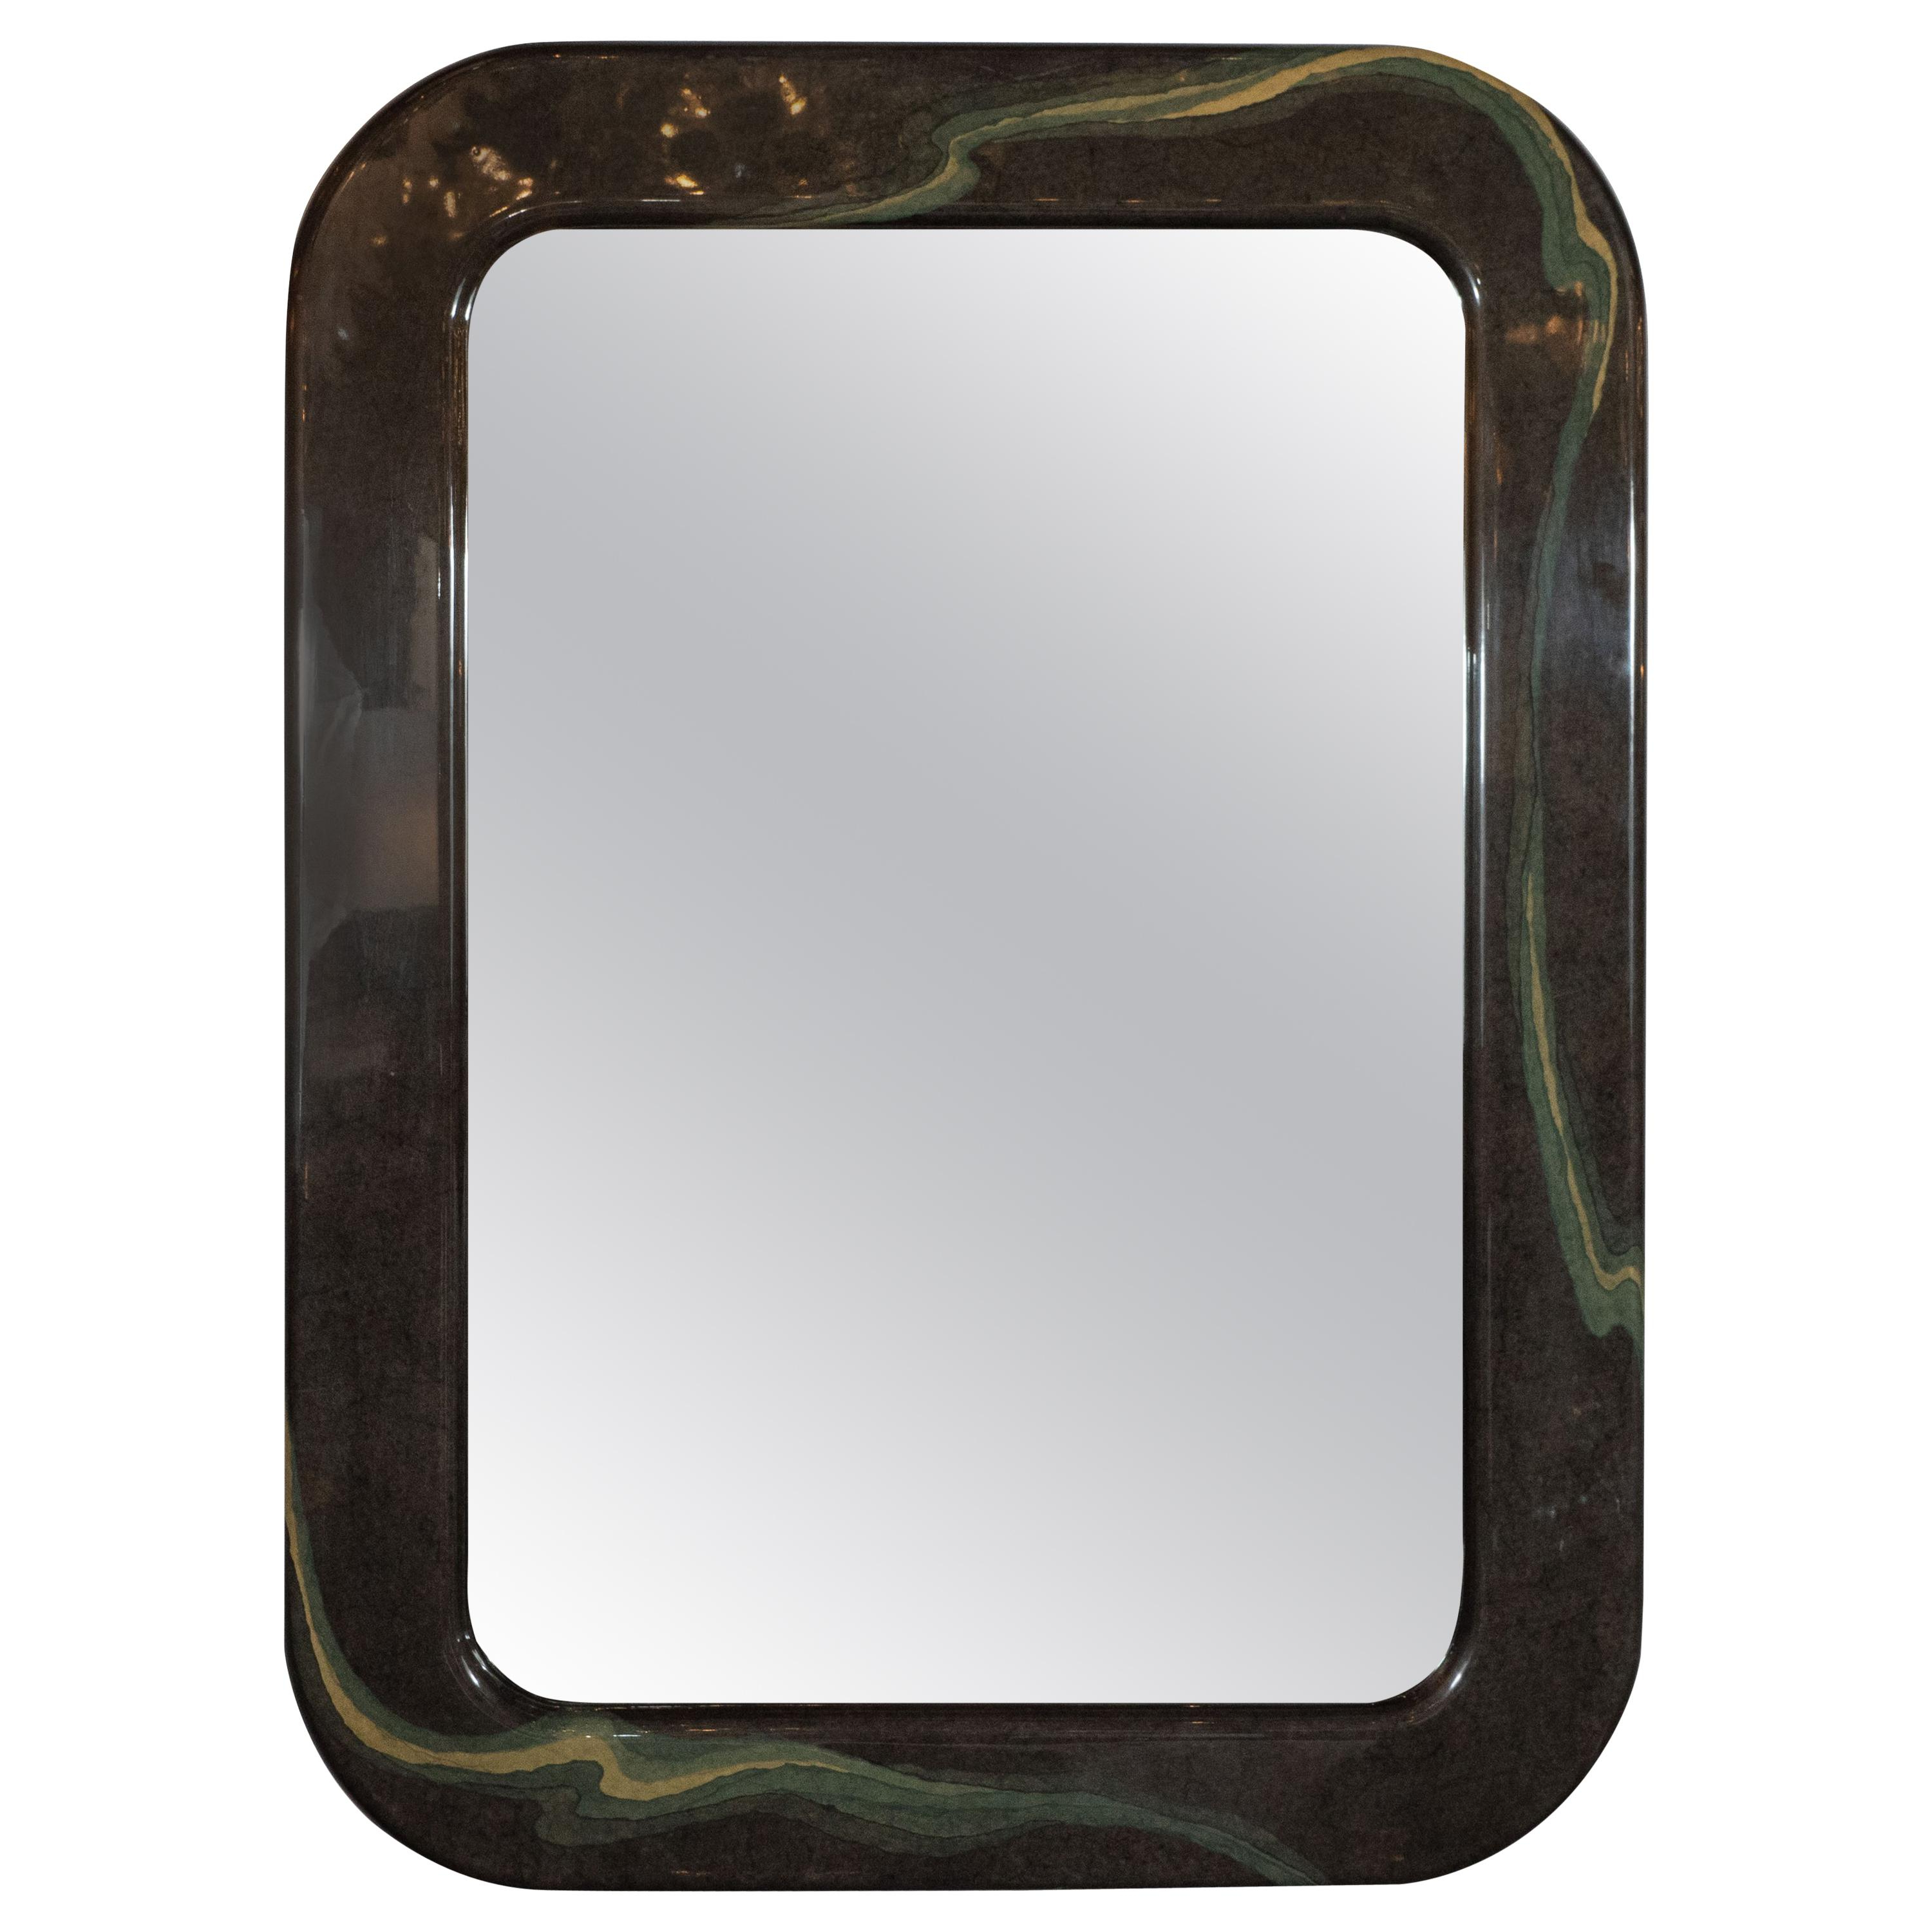 Most Recently Released Mid Century Modern Wall Mirrors Within Mid Century Modern Olive Gray Resin Wall Mirror With Amorphic Swirl Detailing (View 19 of 20)